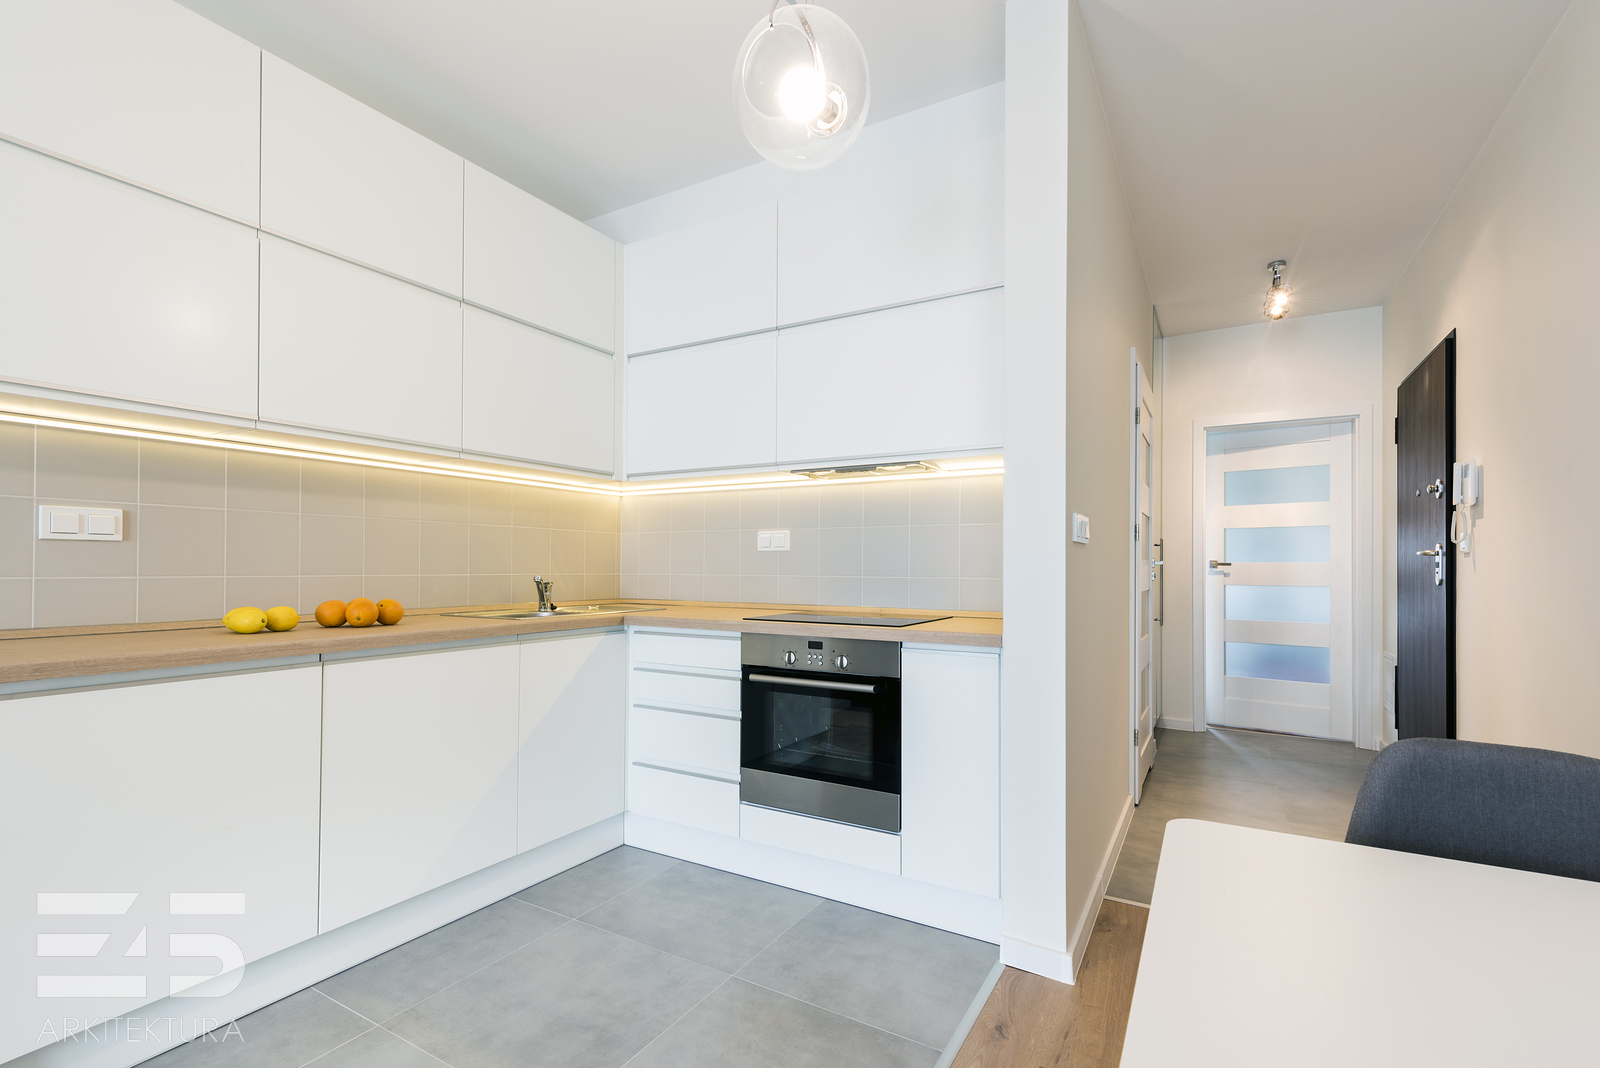 Modern kitchen interior design in white finishing in small apartment